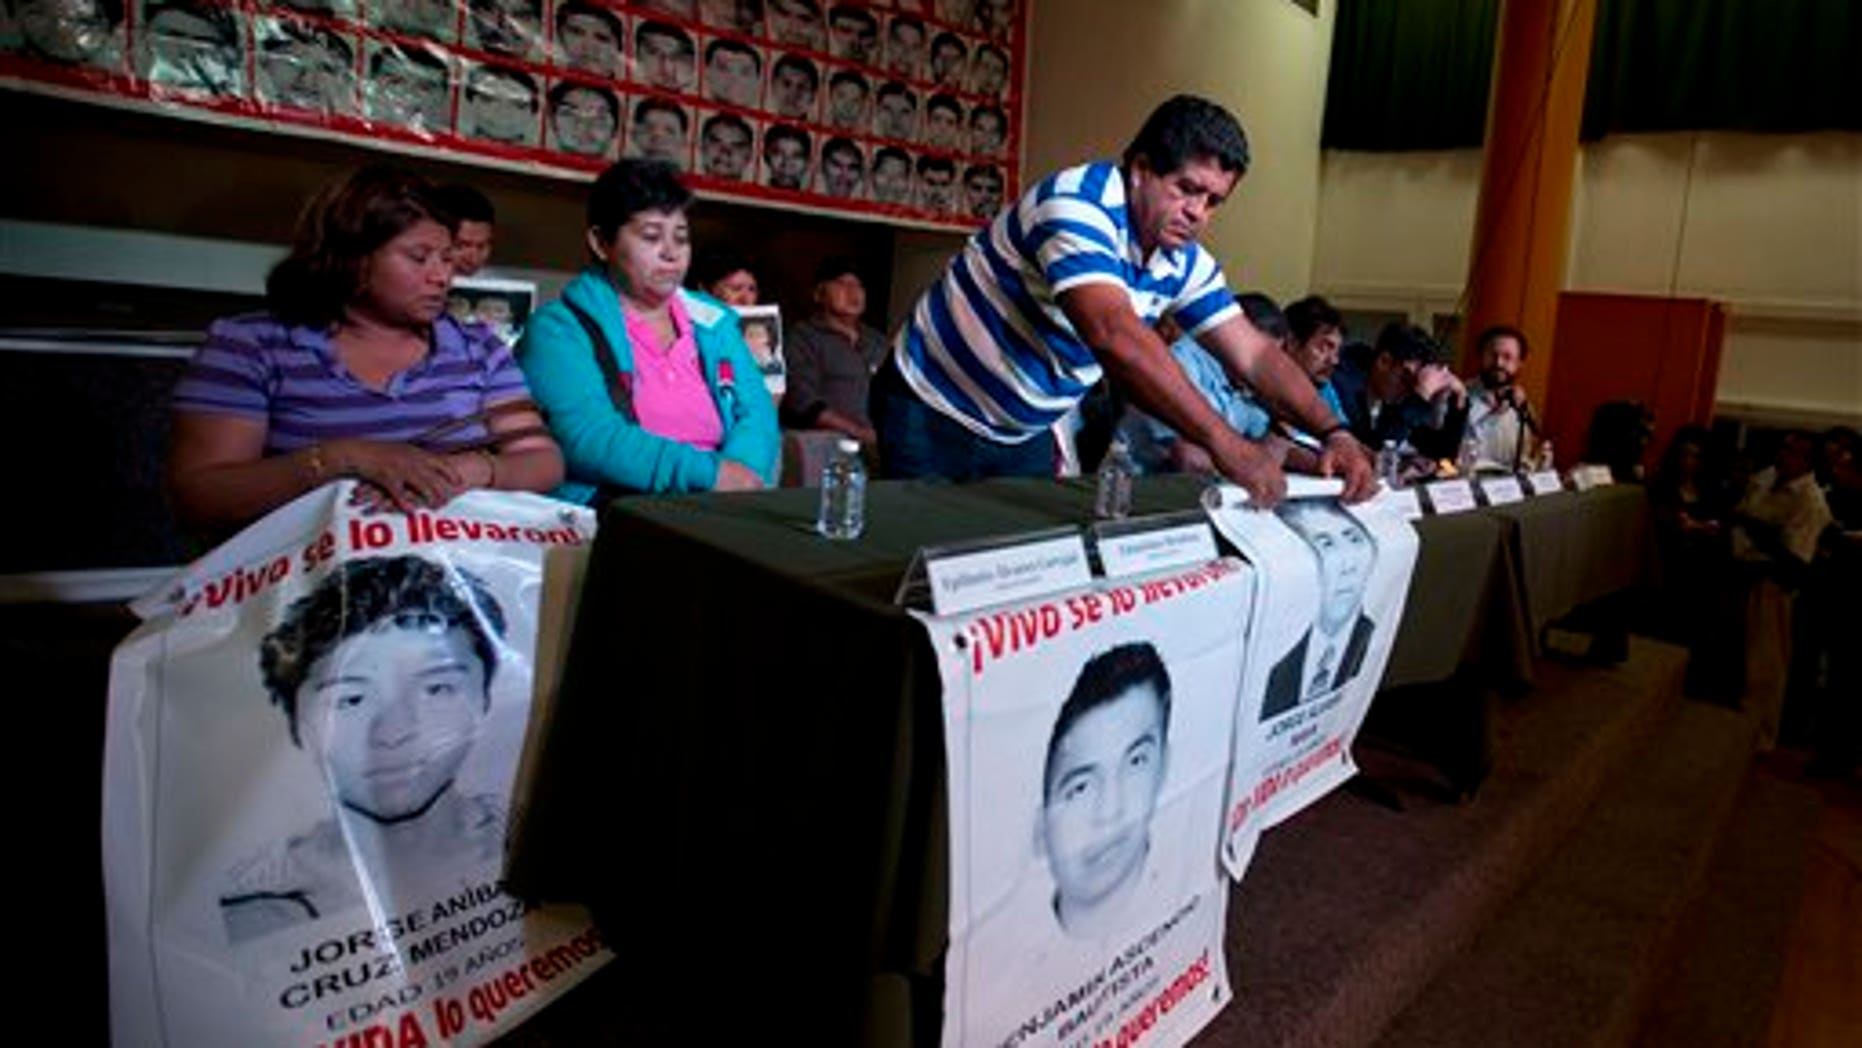 Parents of missing students attend the press conference in Mexico, City, Tuesday Jan. 27, 2015.